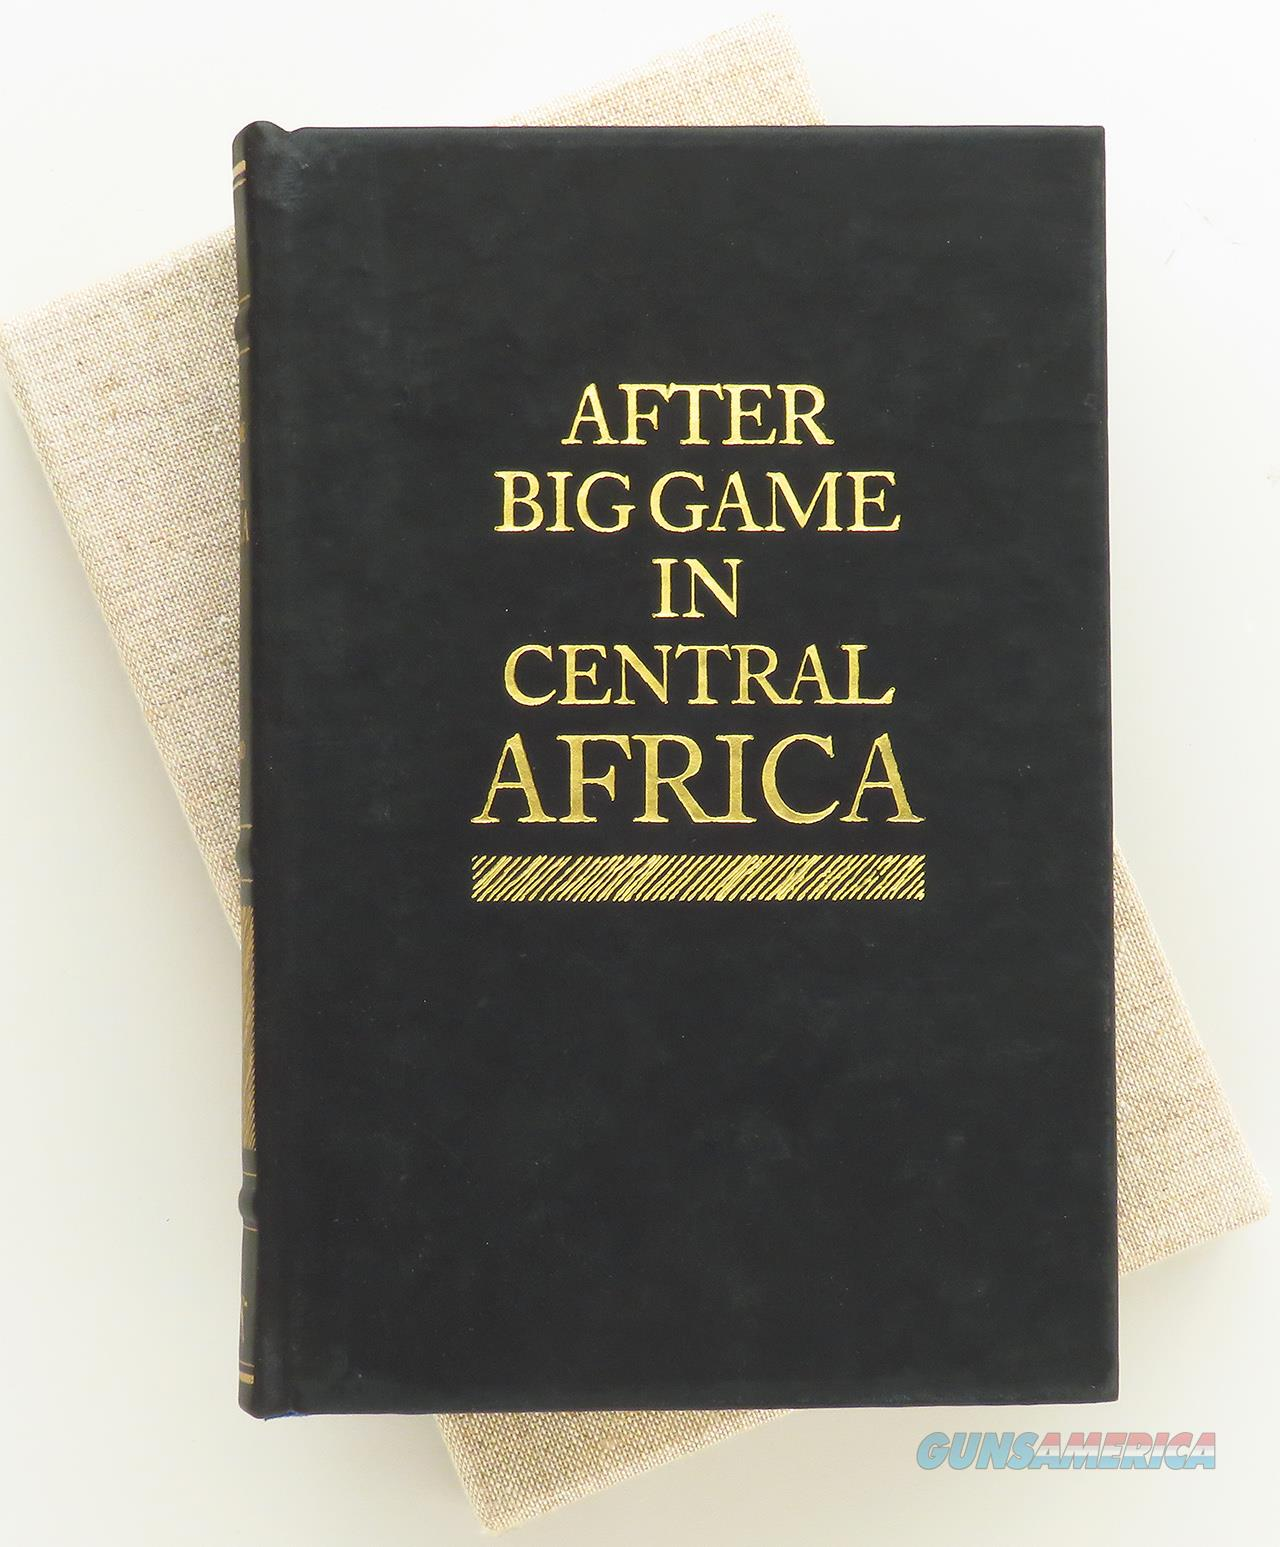 After Big Game in Central Africa by Foa, Deluxe, 402/500, leather, slip  Non-Guns > Books & Magazines